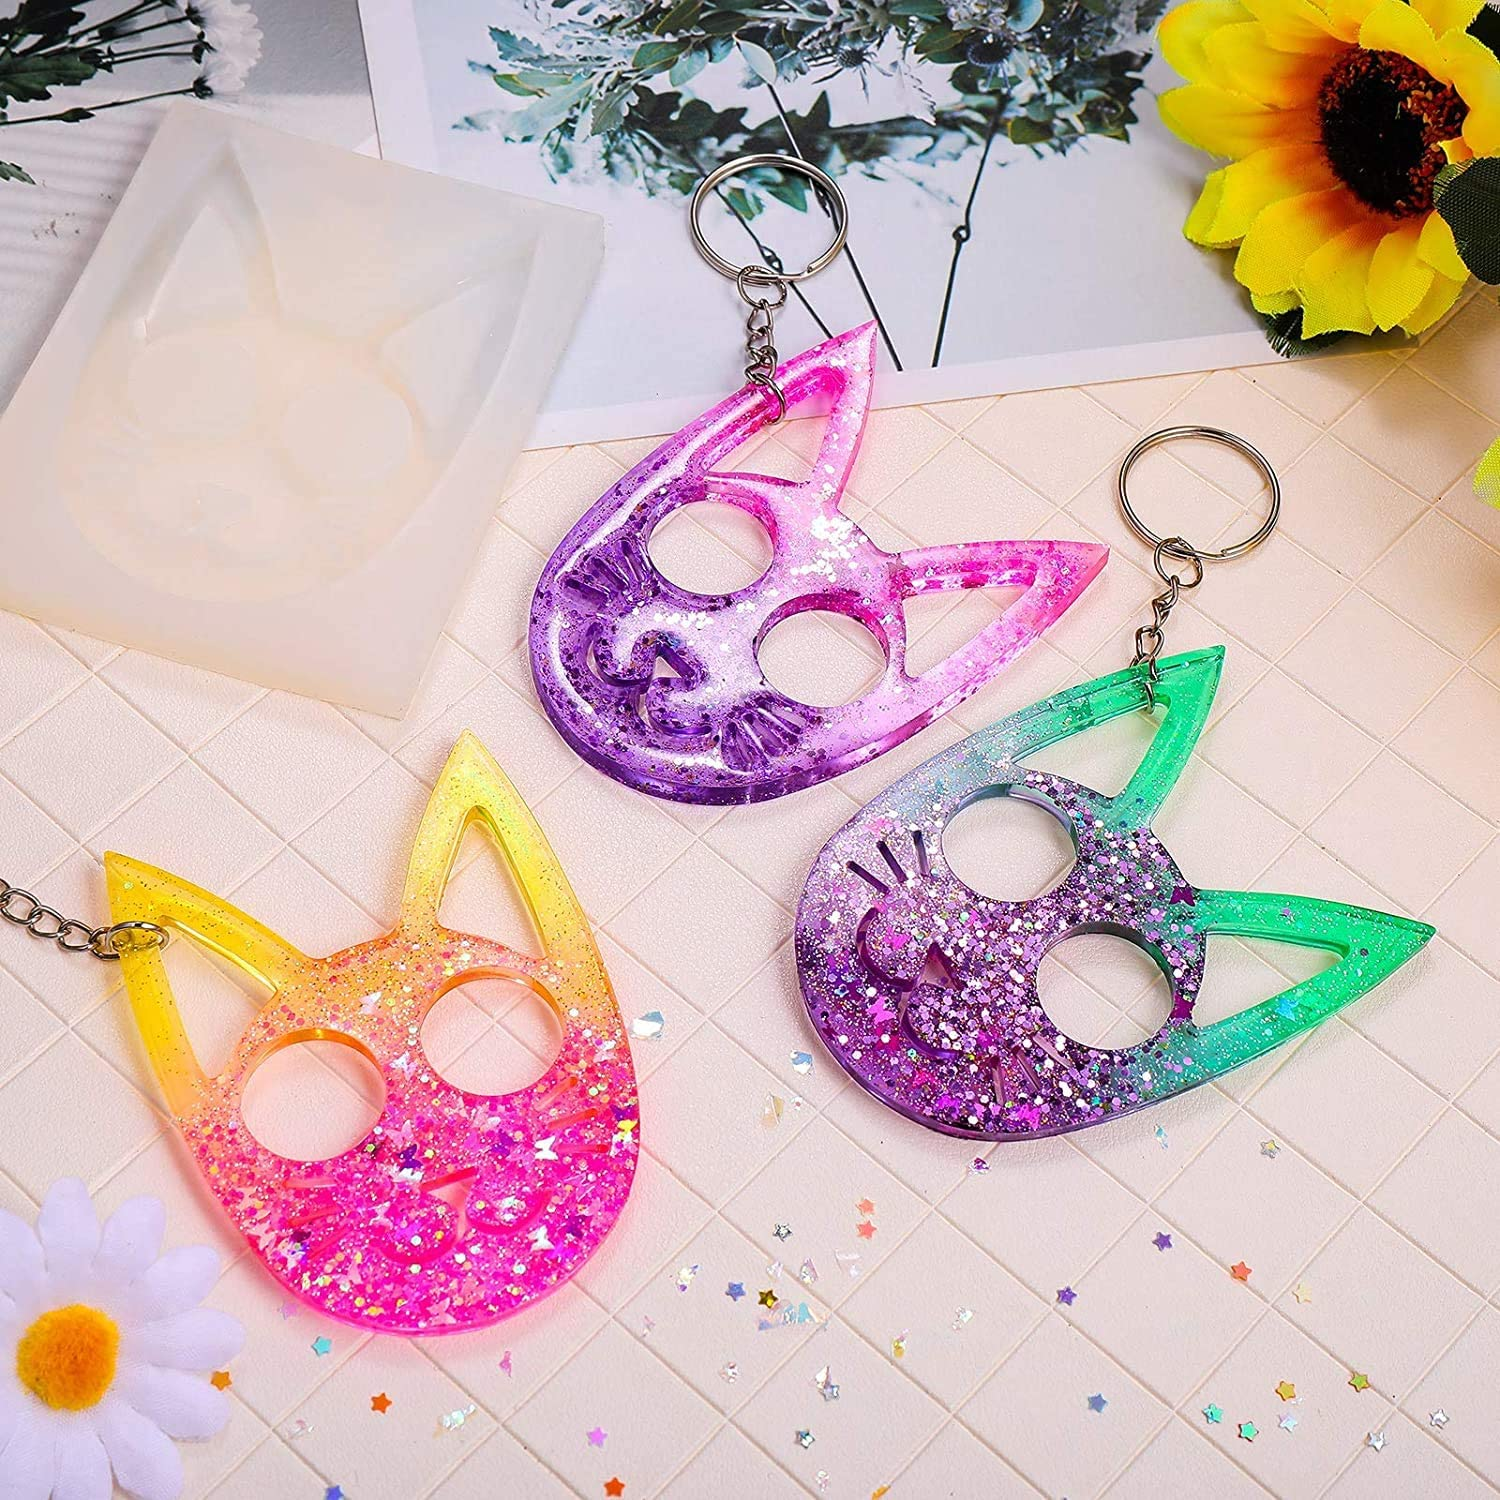 Flexible and Reusable Crystal Epoxy Resin Mold DIY Crafts Decoration Key Chain Pendant Making Tools 2PCS Self-Defense Cat Key Chain Silicone Mould